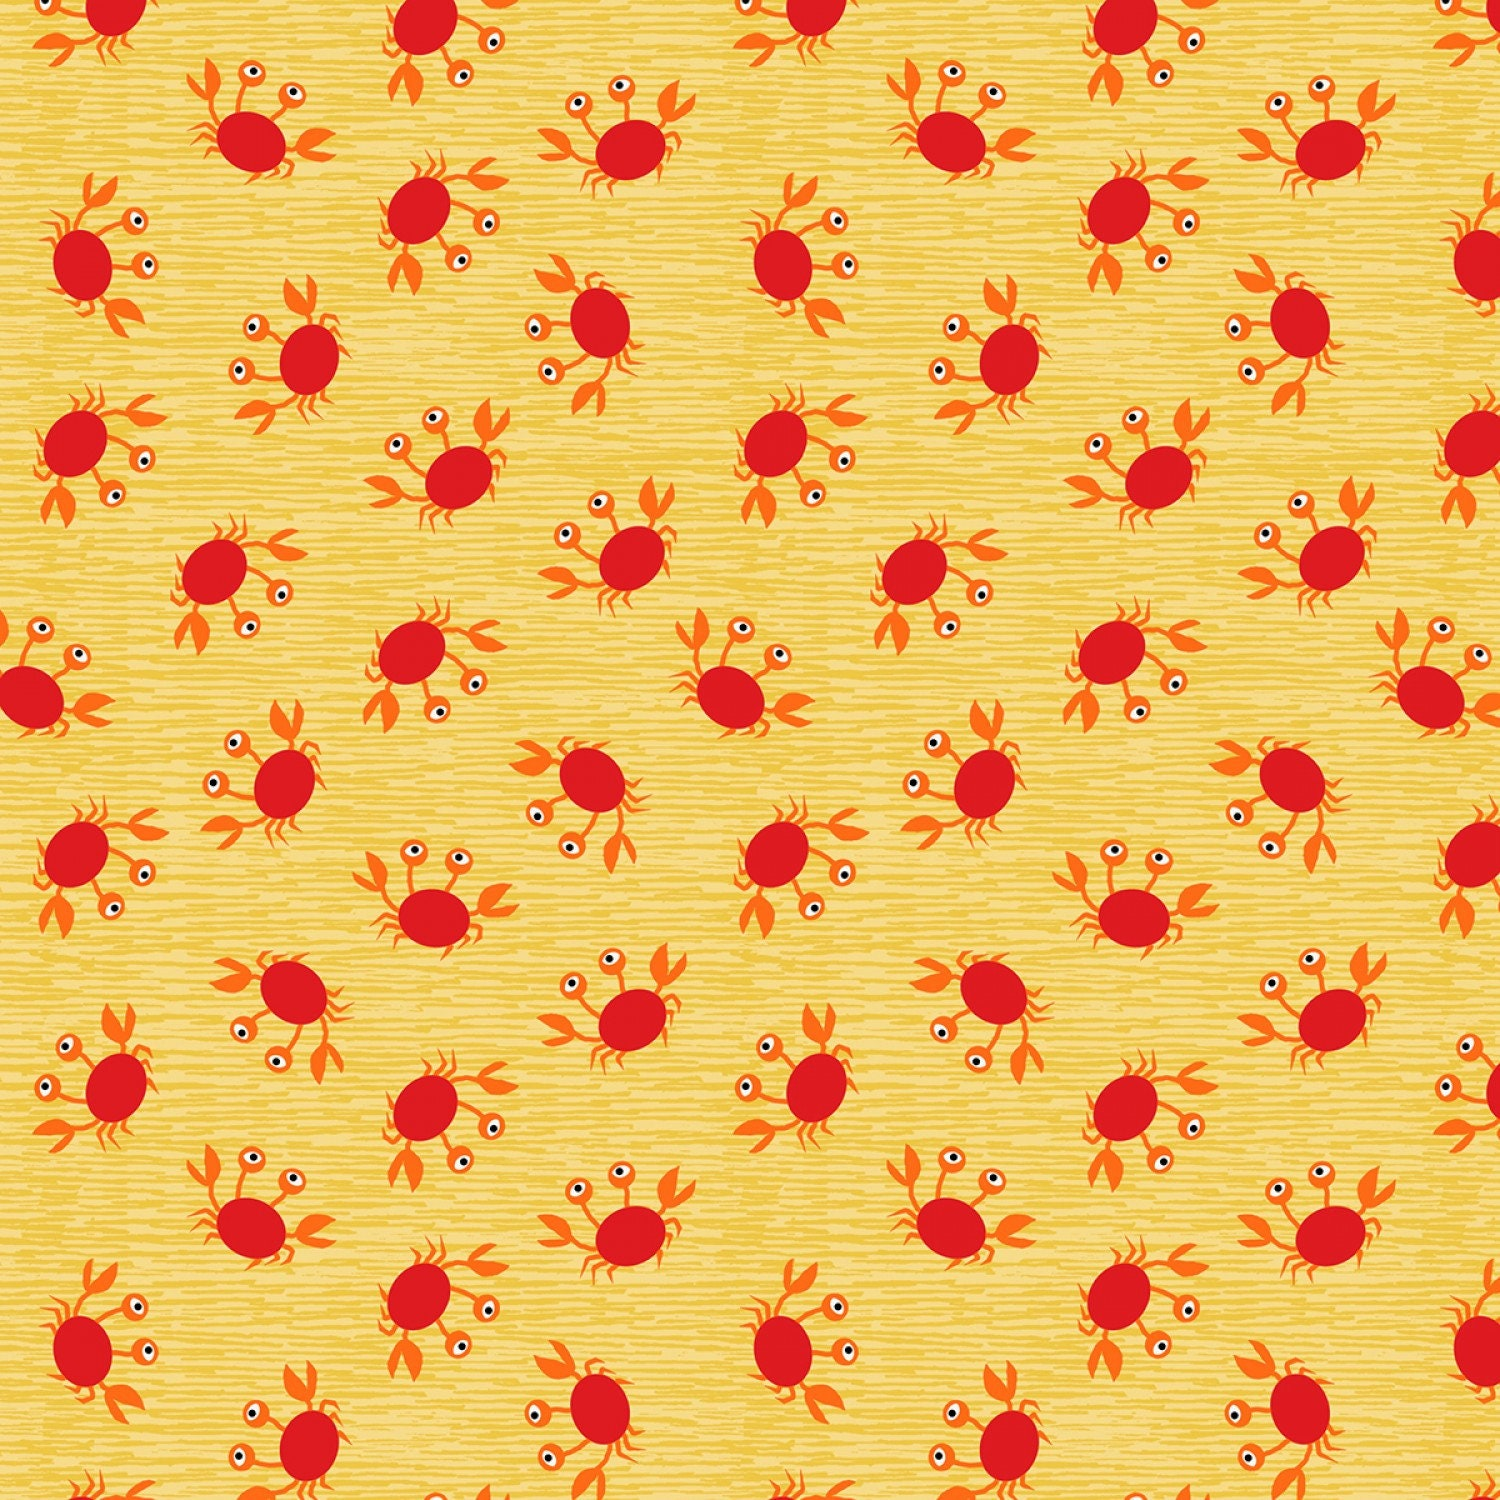 d4d868f6c115f Red Crabs on Yellow Fabric by Timeless Treasures Snorkel